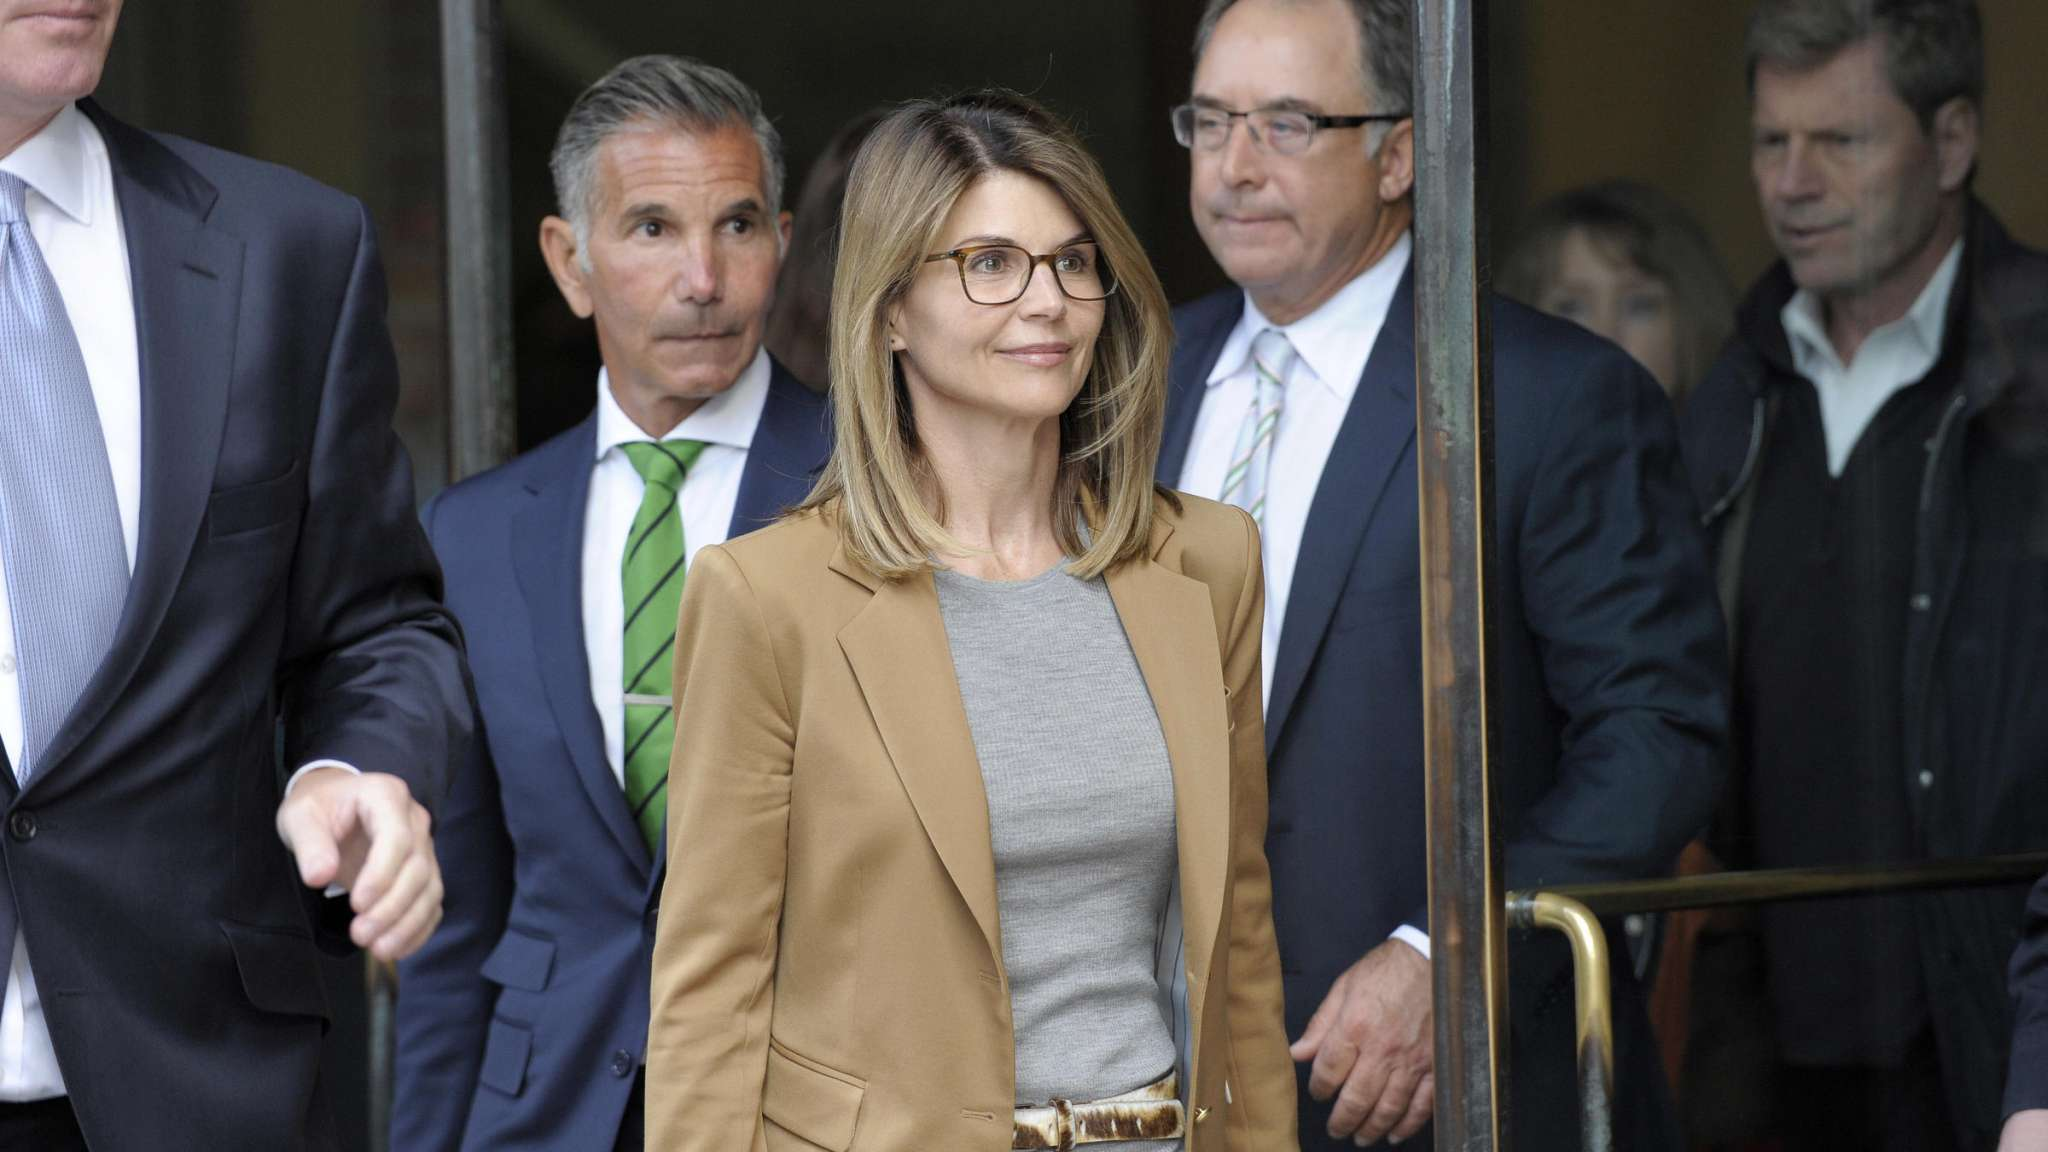 lori-loughlin-doesnt-think-she-did-anything-that-bad-will-never-stop-fighting-the-charges